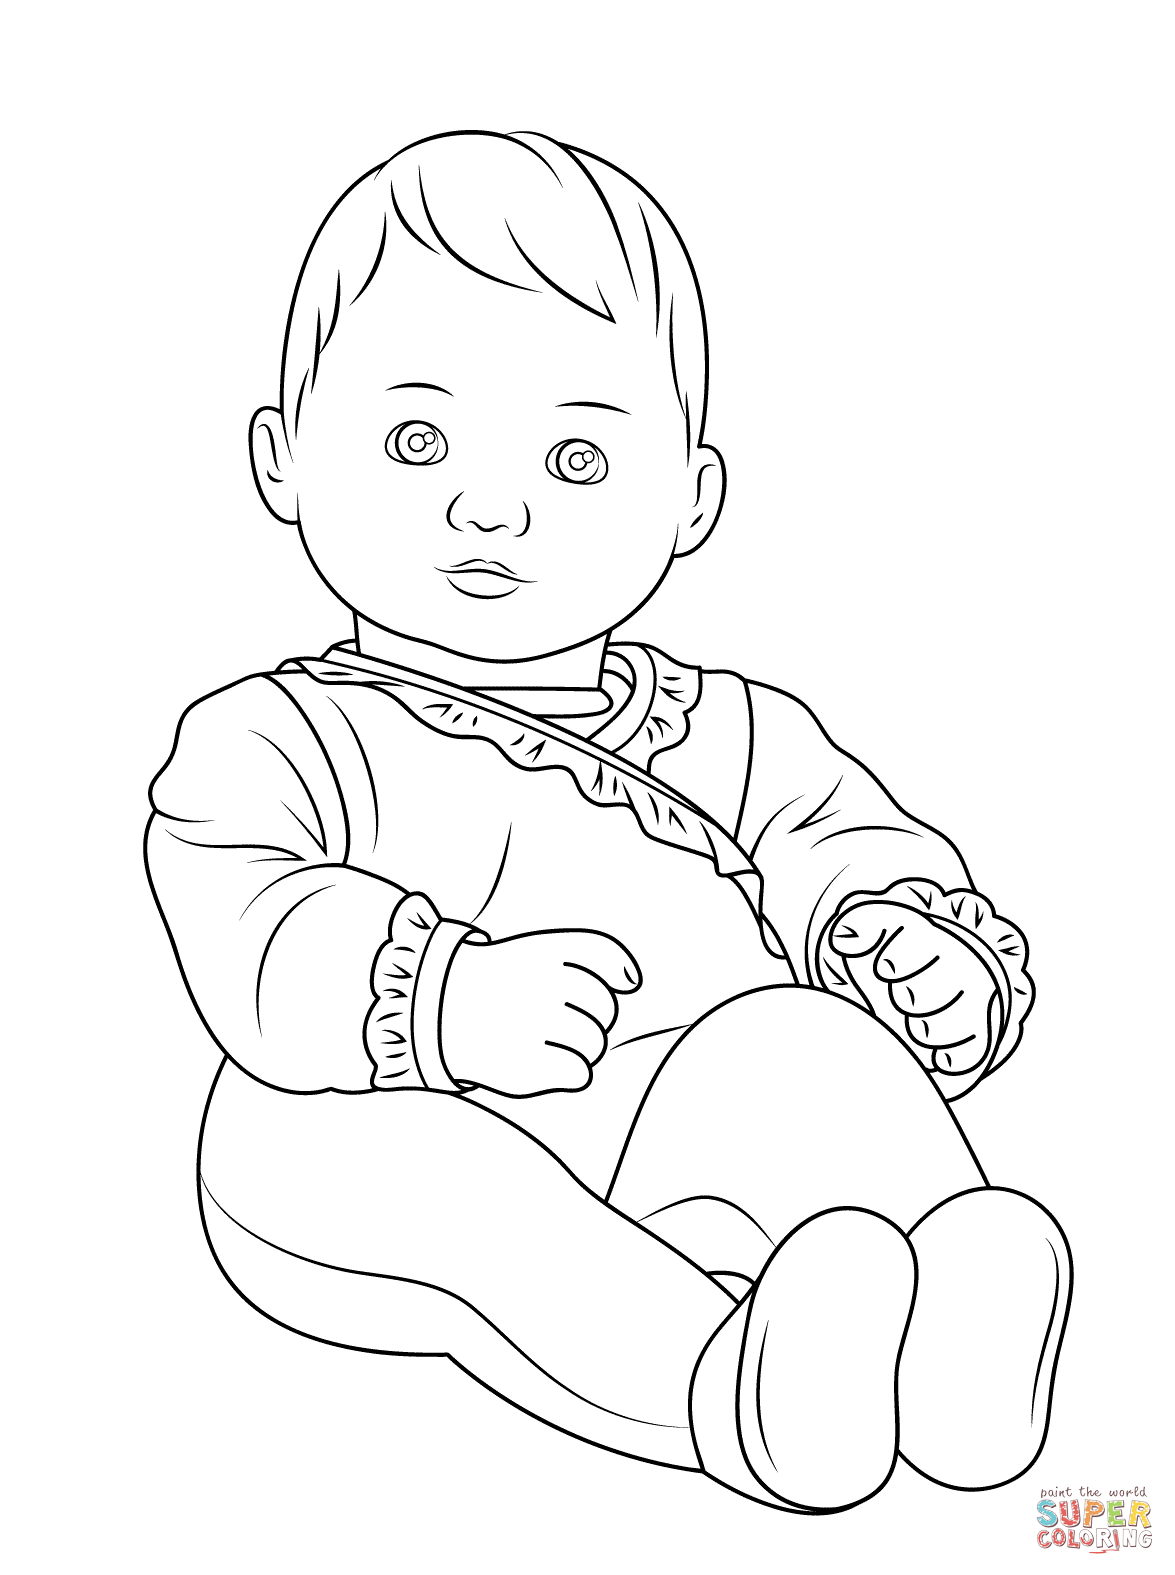 Julie american girl doll clipart at school graphic black and white American Girl coloring pages | Free Coloring Pages graphic black and white